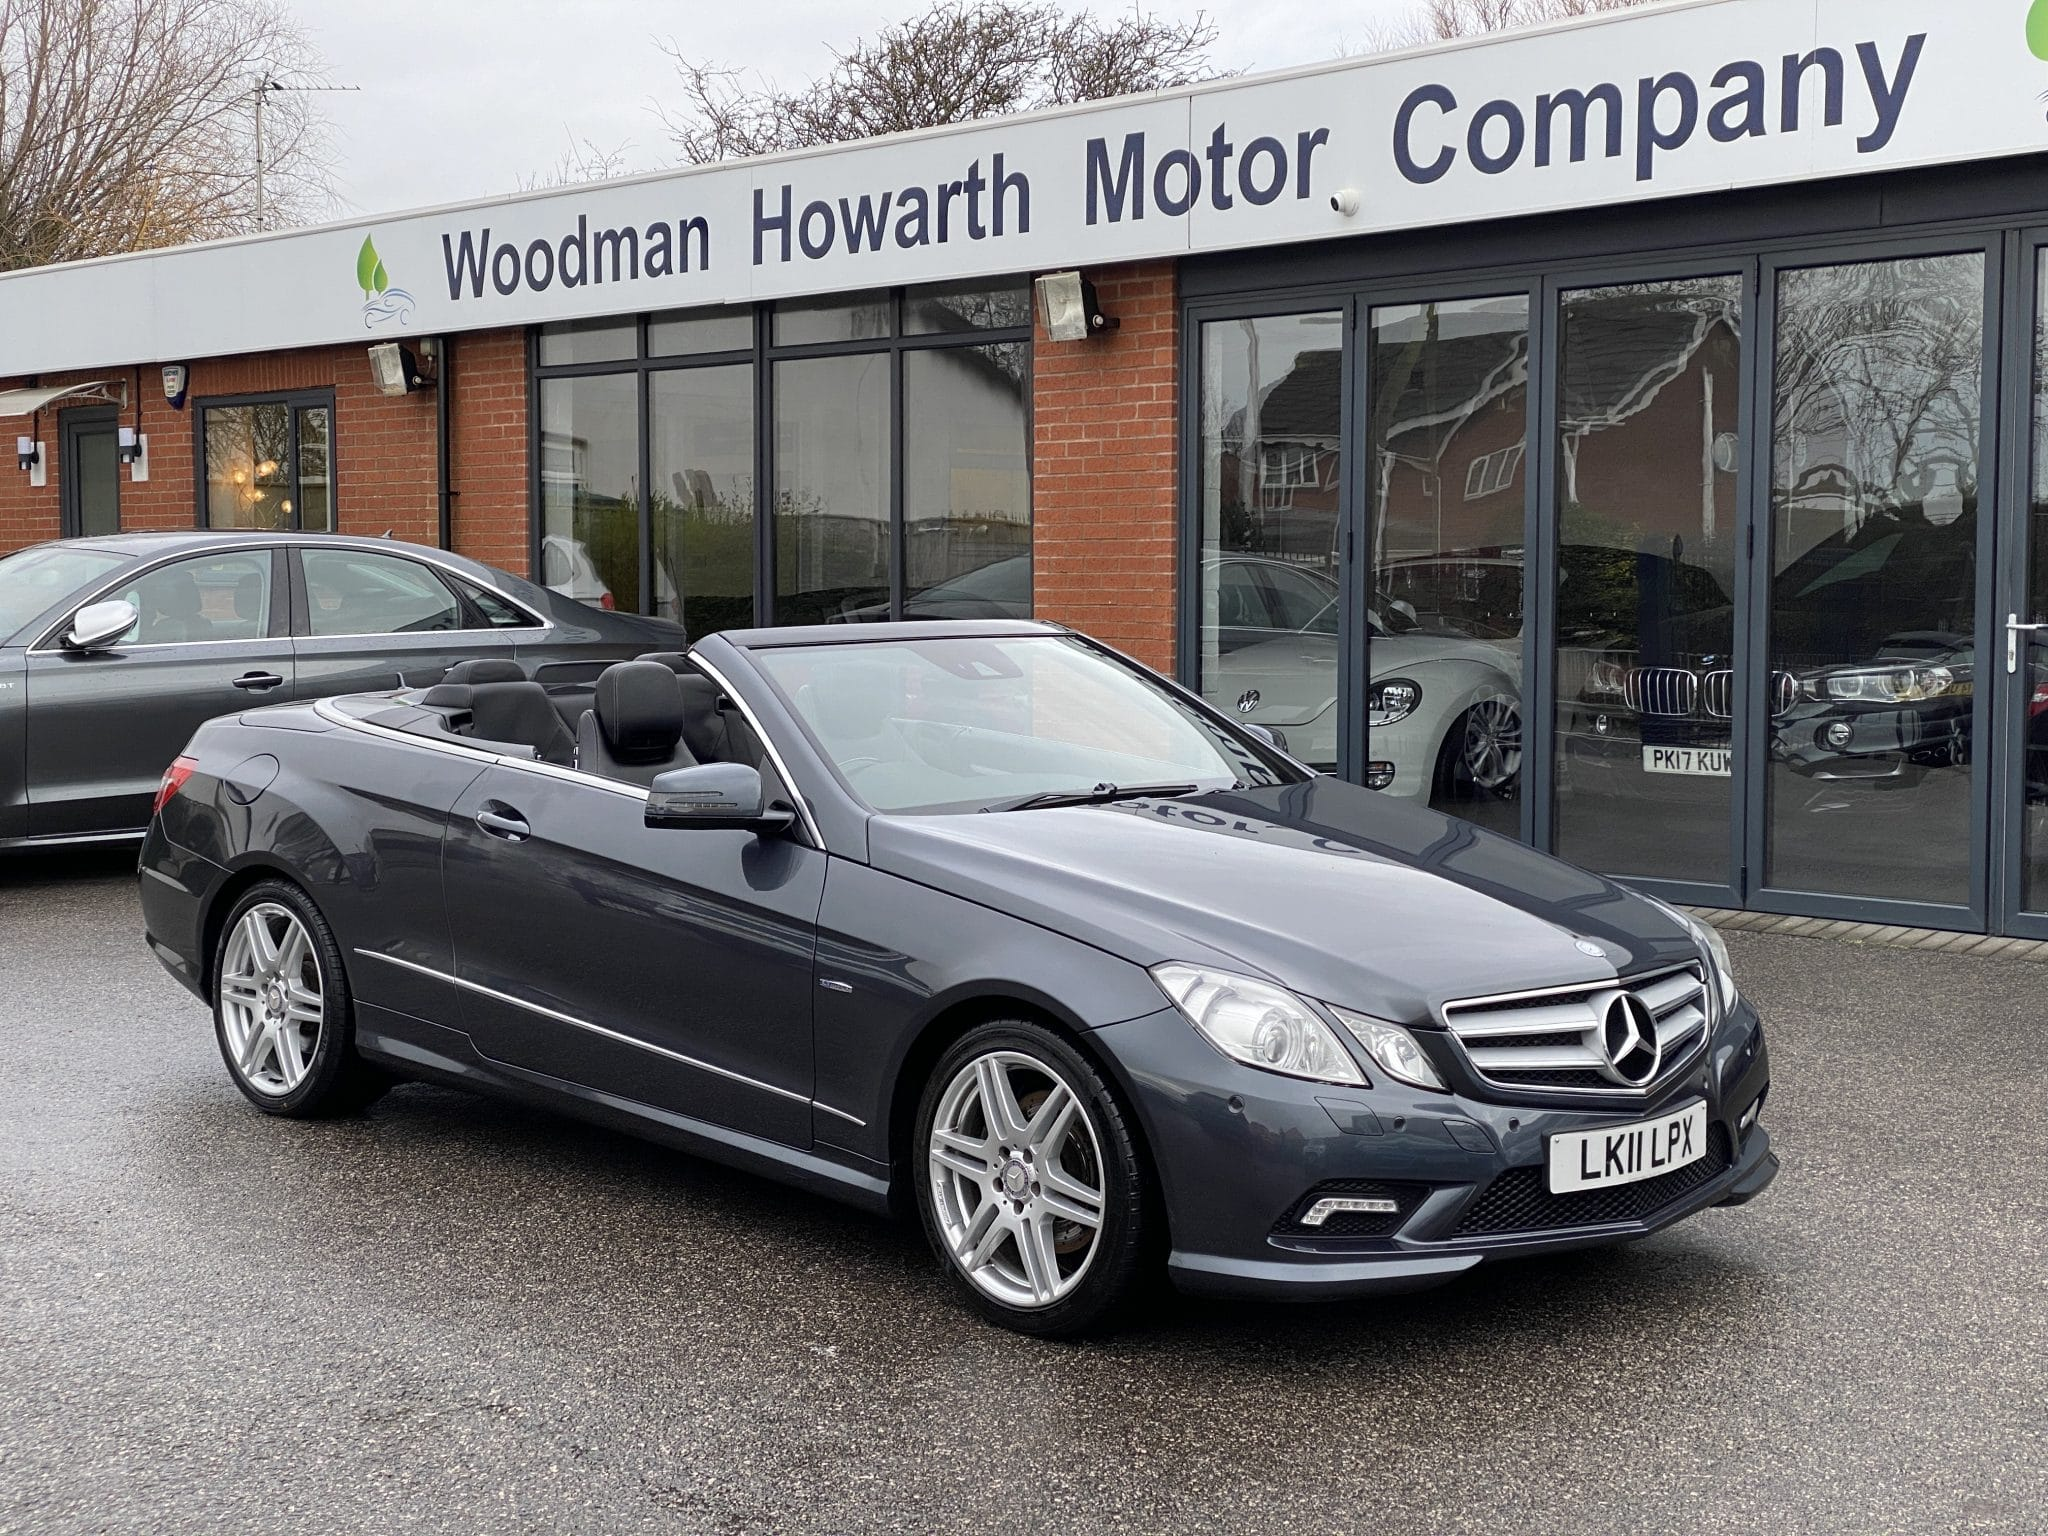 2011 11 MERCEDES BENZ E350 CDI BLUE EFF CONVERTIBLE AUTOMATIC 231 BHP FSH Low Miles Excellent Condition & Value